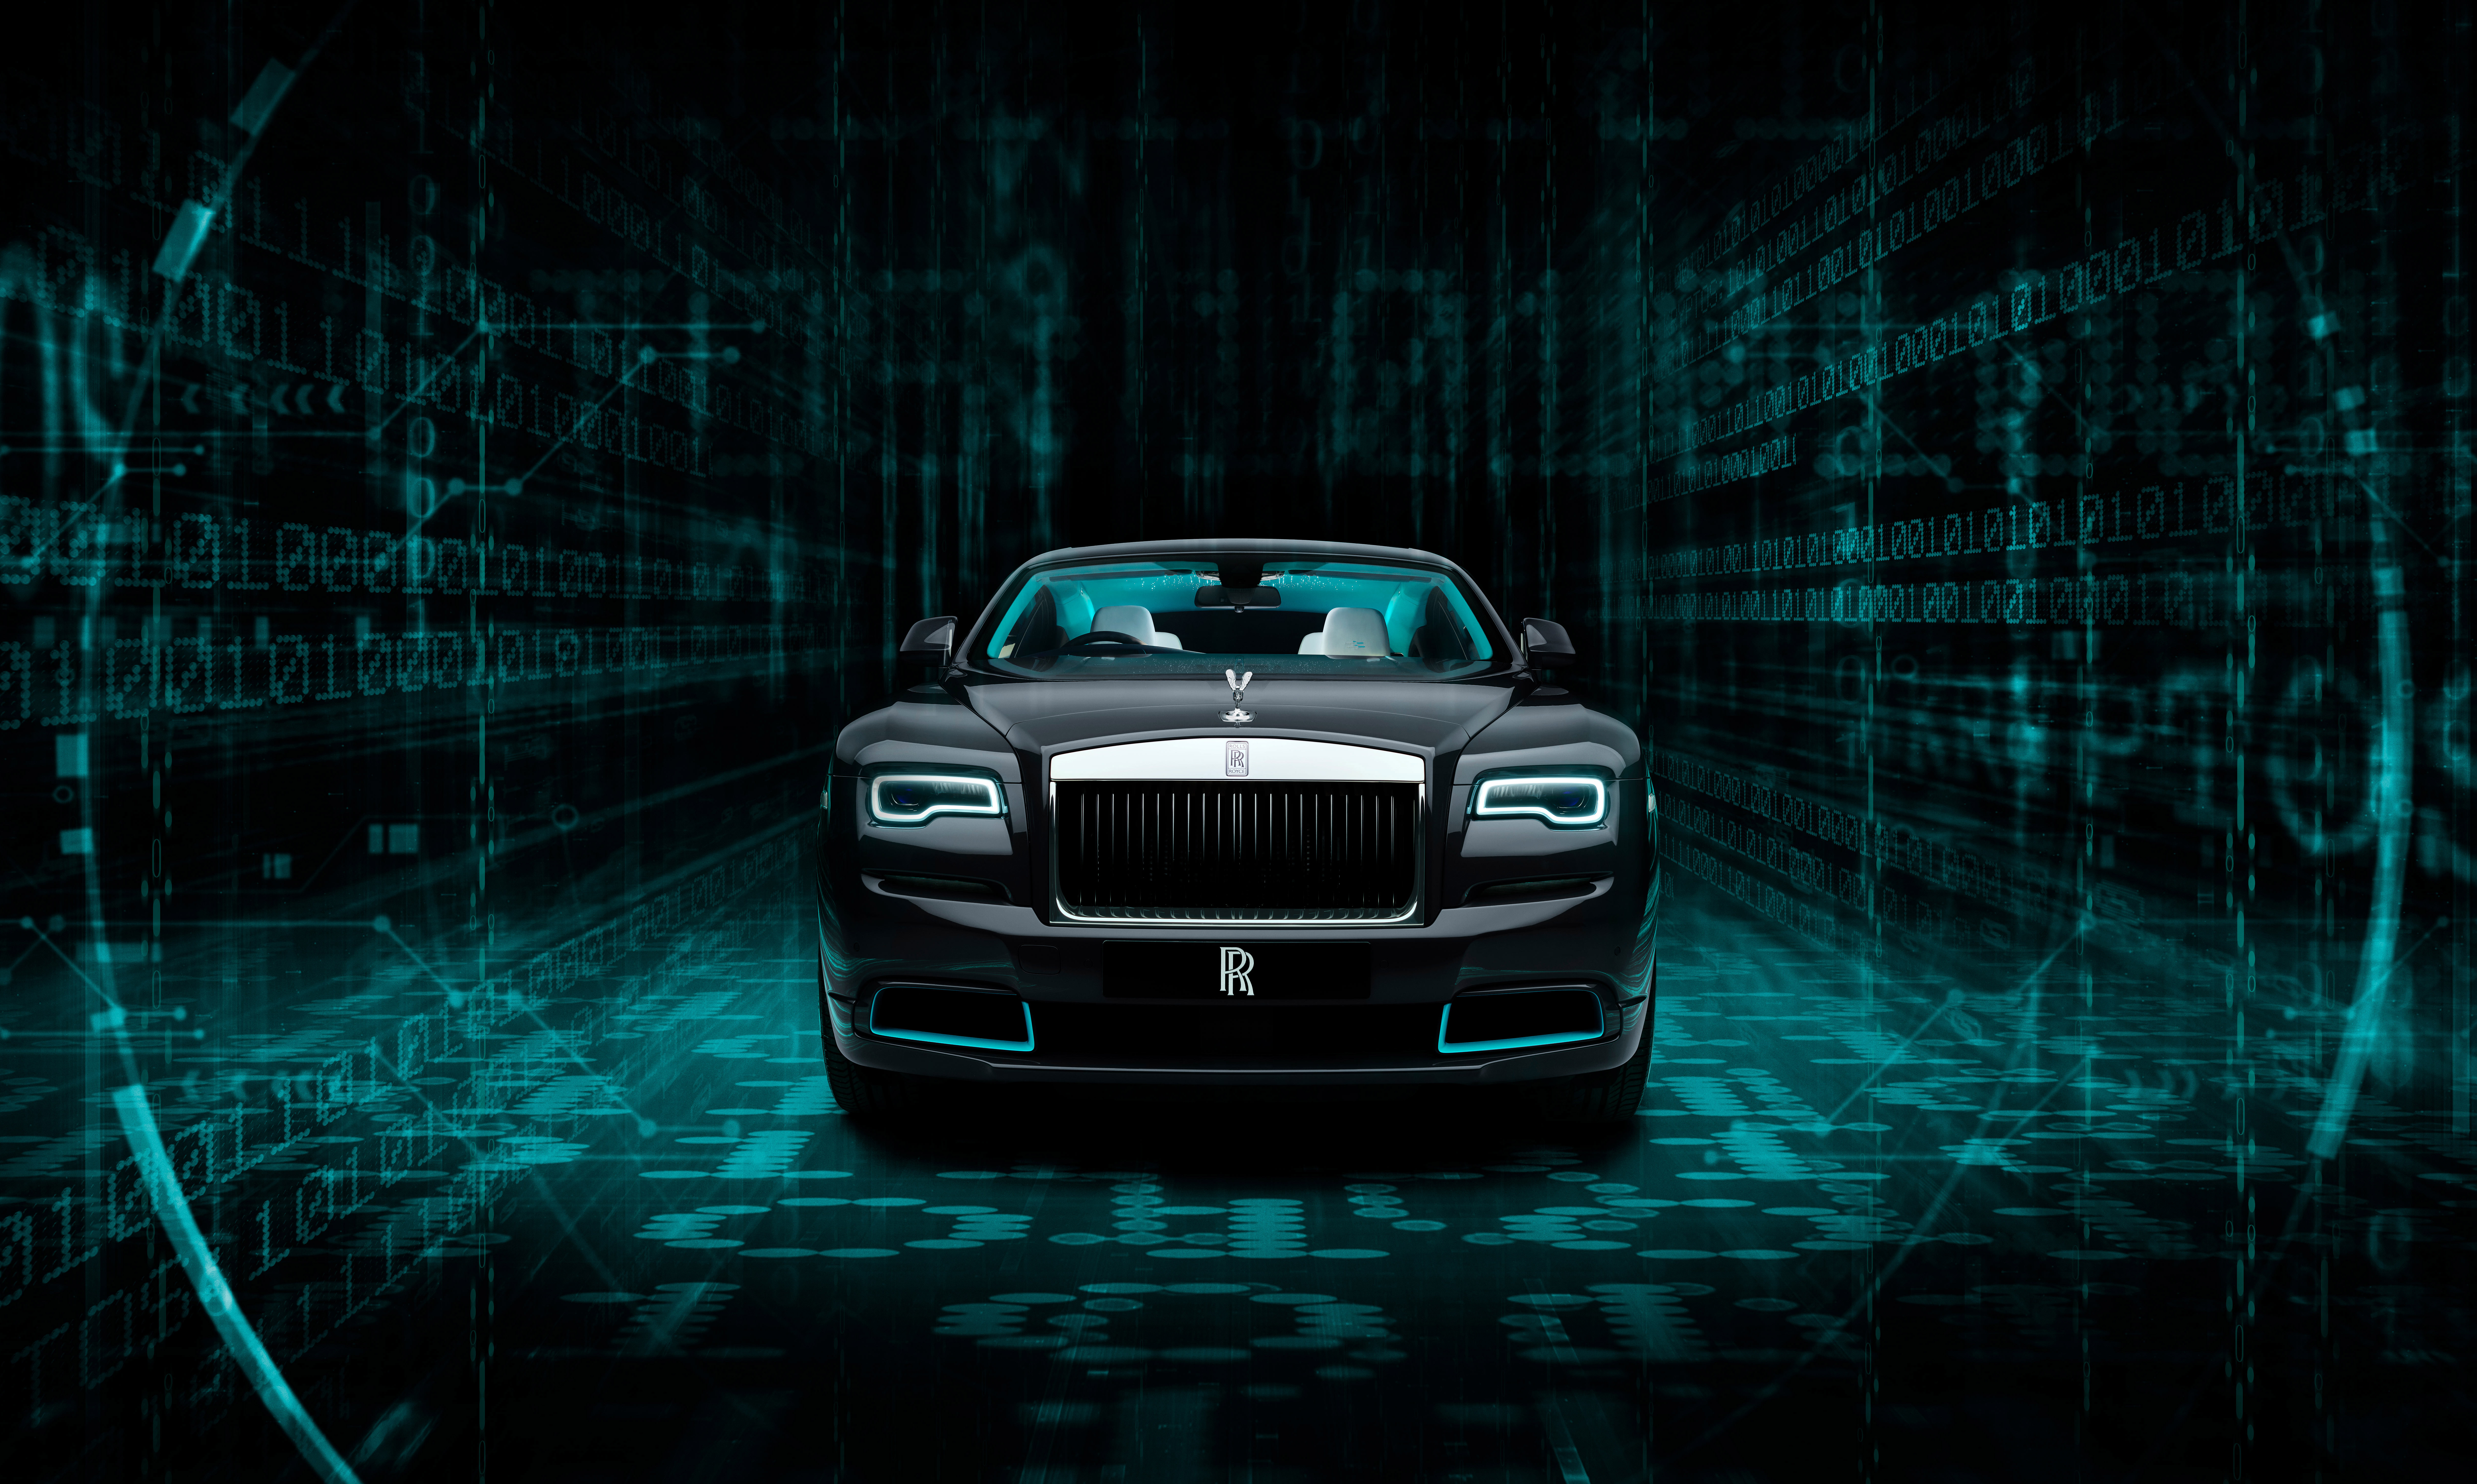 Rolls Royce Wraith Kryptos Collection 2020 Hd Cars 4k Wallpapers Images Backgrounds Photos And Pictures